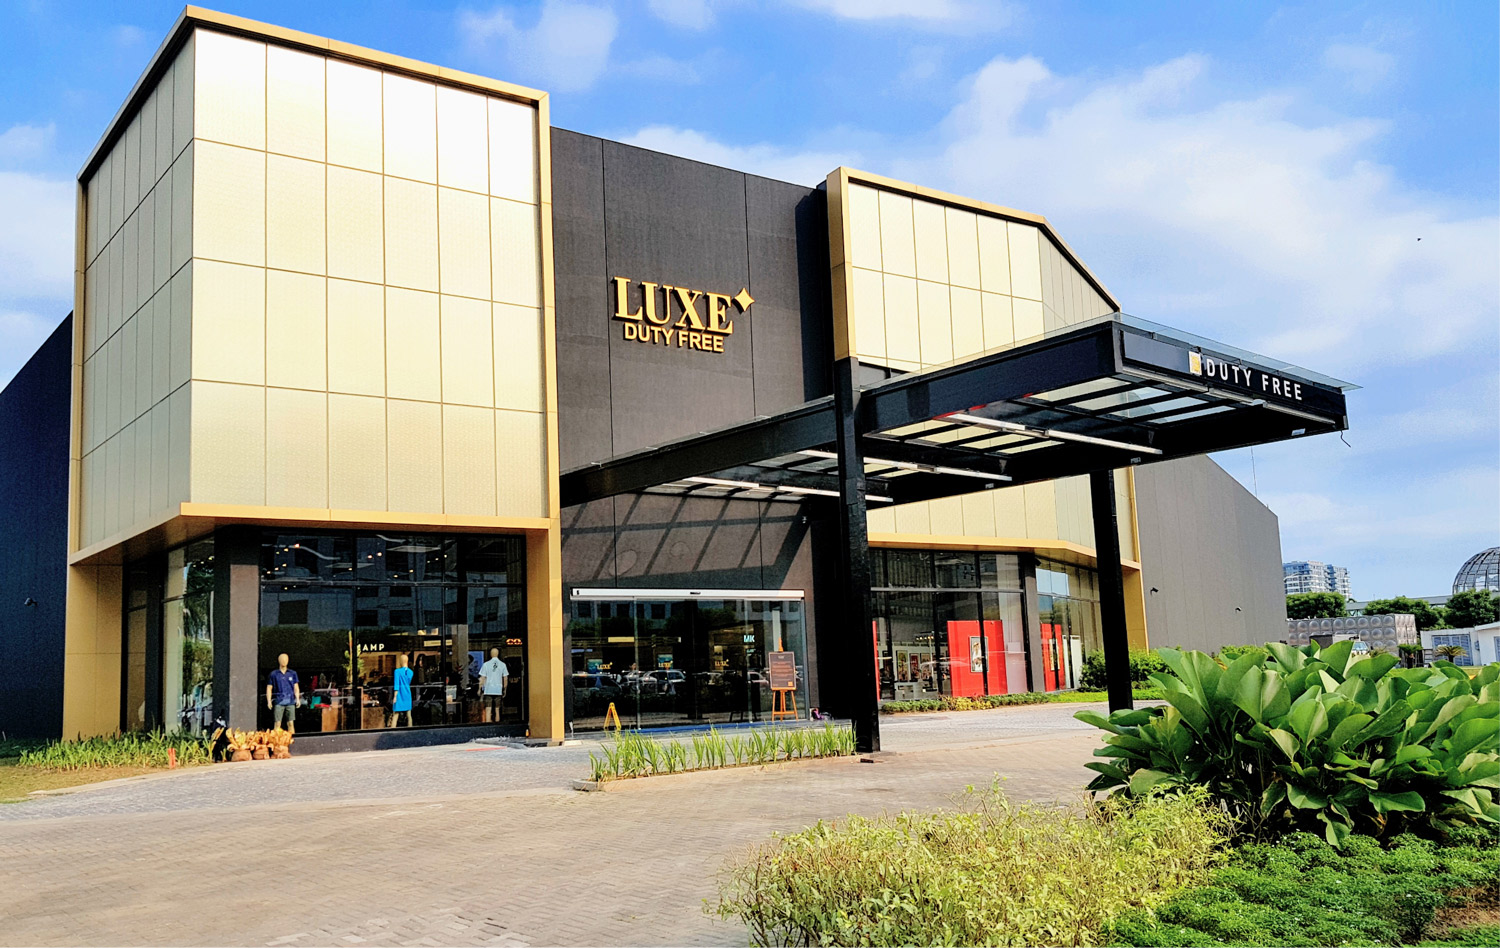 Luxury has a new address - Come and visit the newest and grandest shopping mall located at Pacific Drive, MOA Complex.